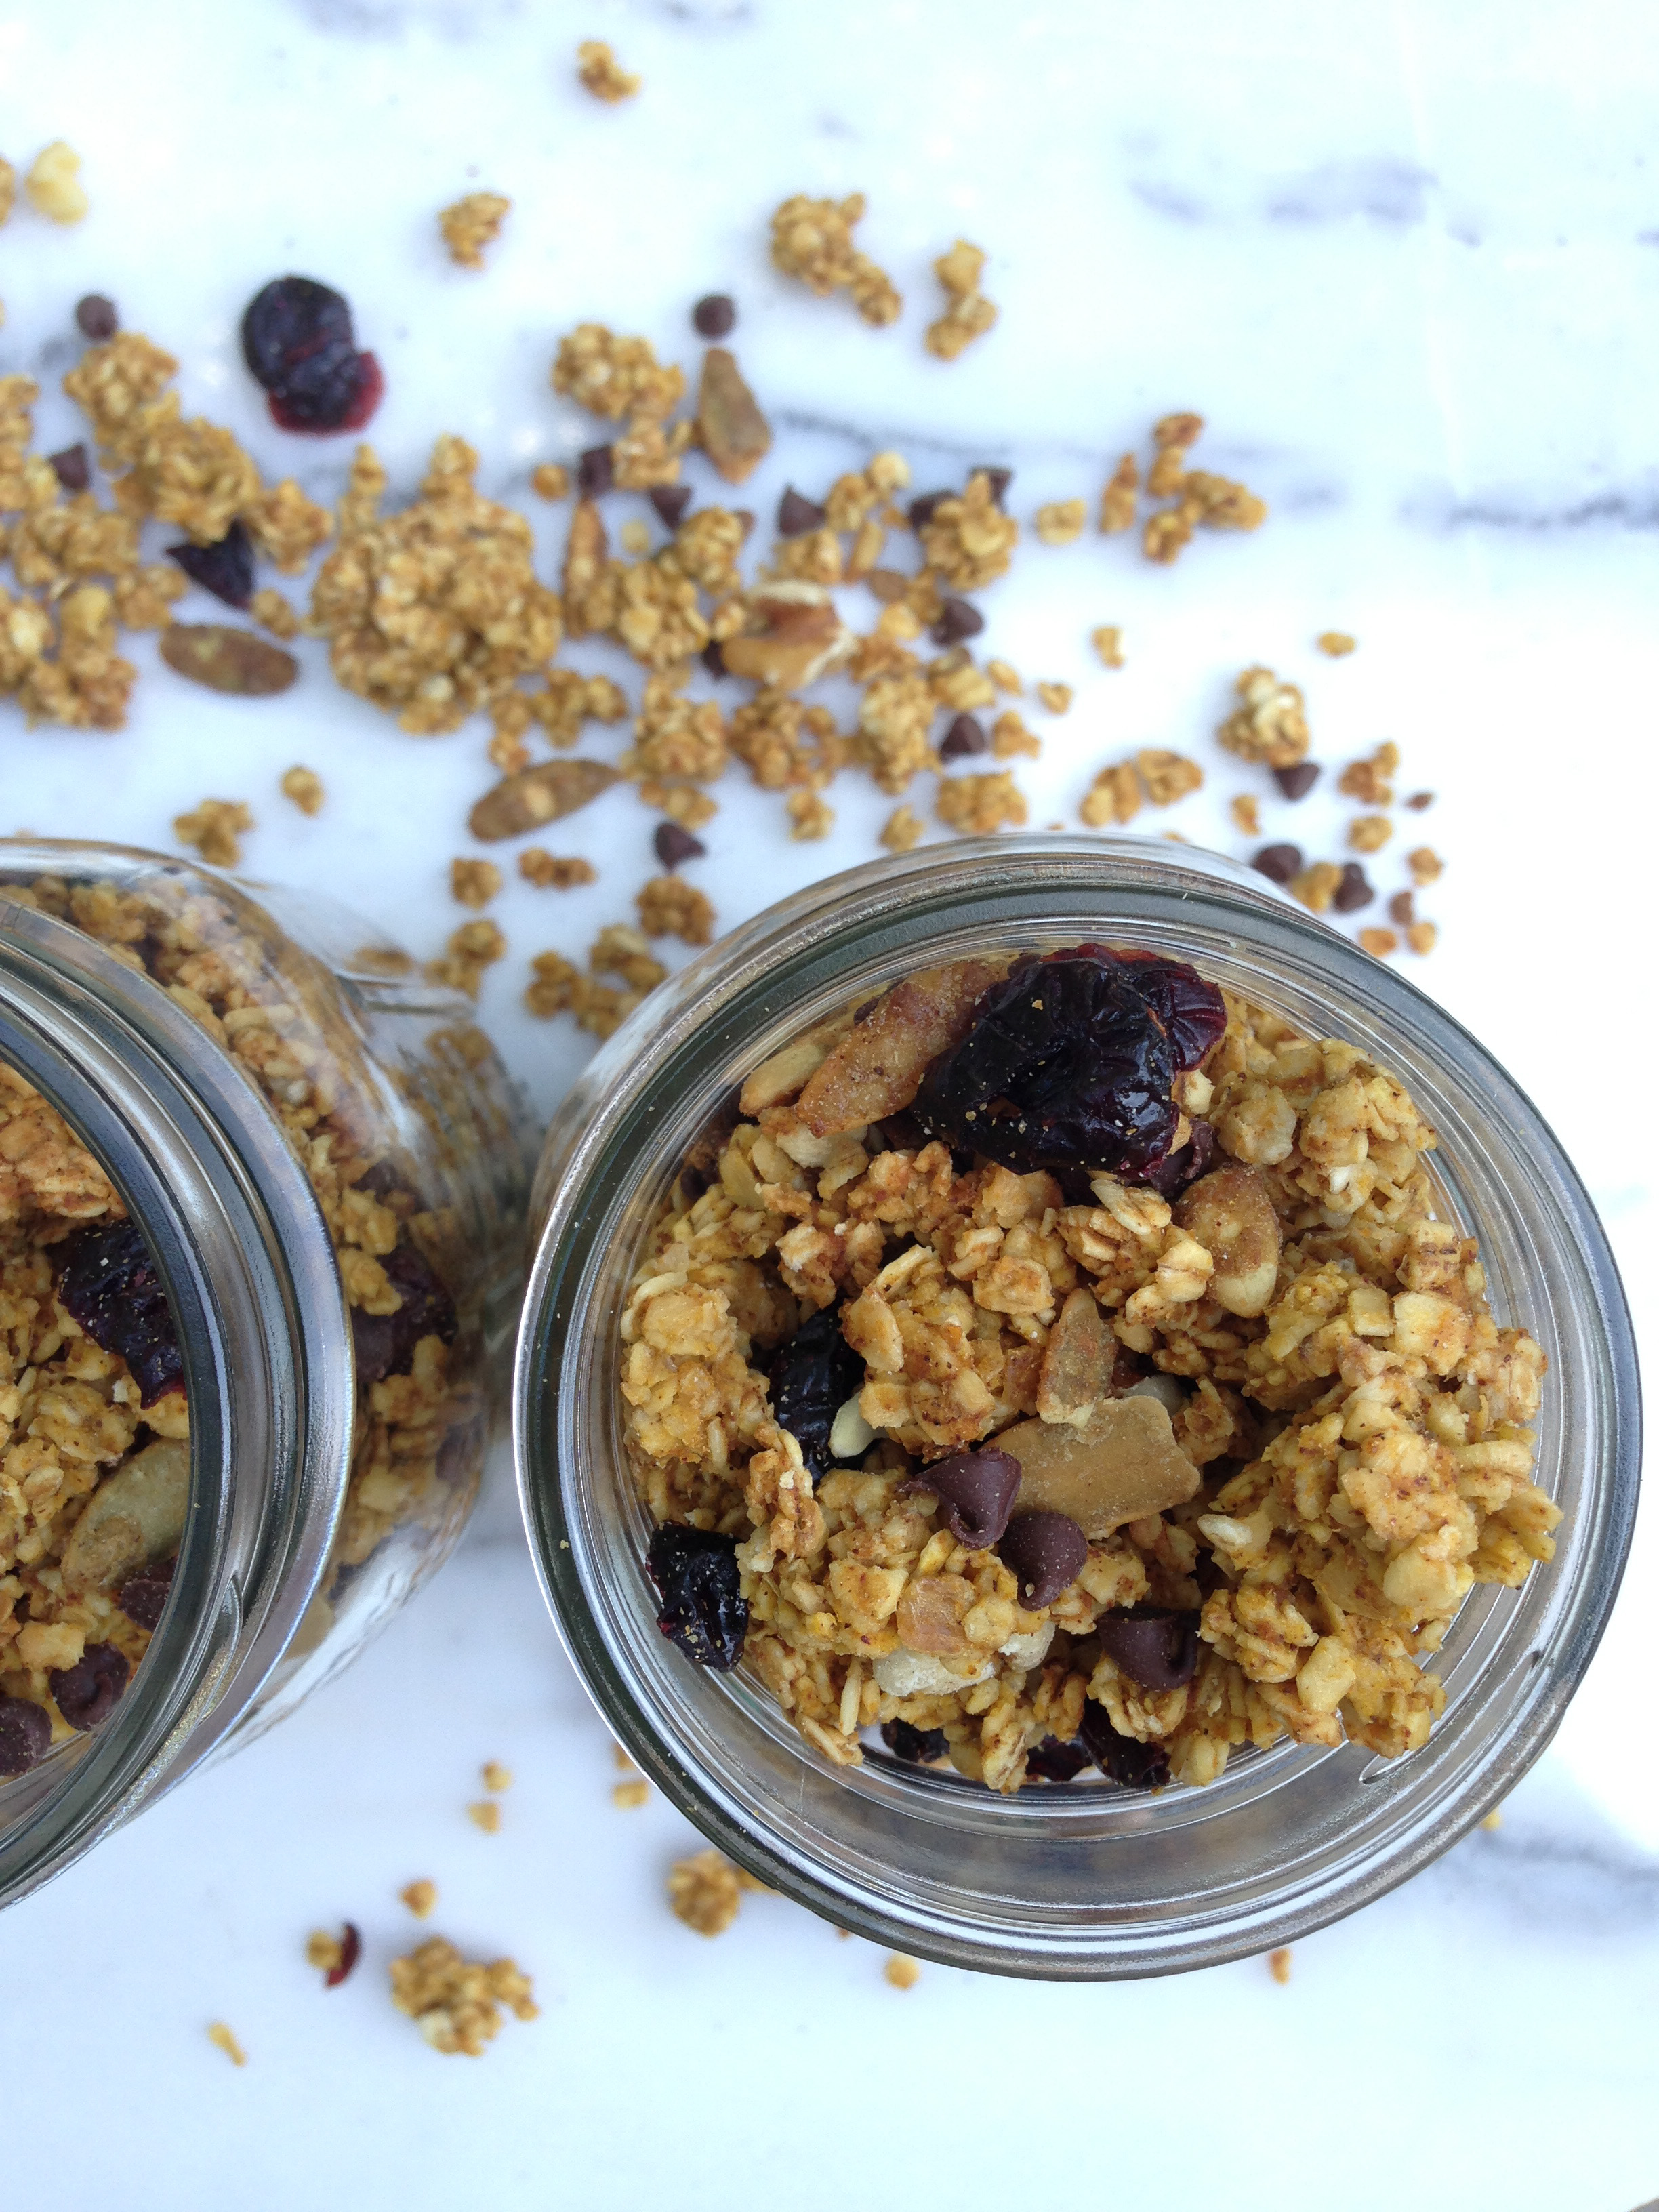 Gluten free pumpkin granola filled with pumpkin seeds, mini chocolate chips, dried cherries, and chopped walnuts.